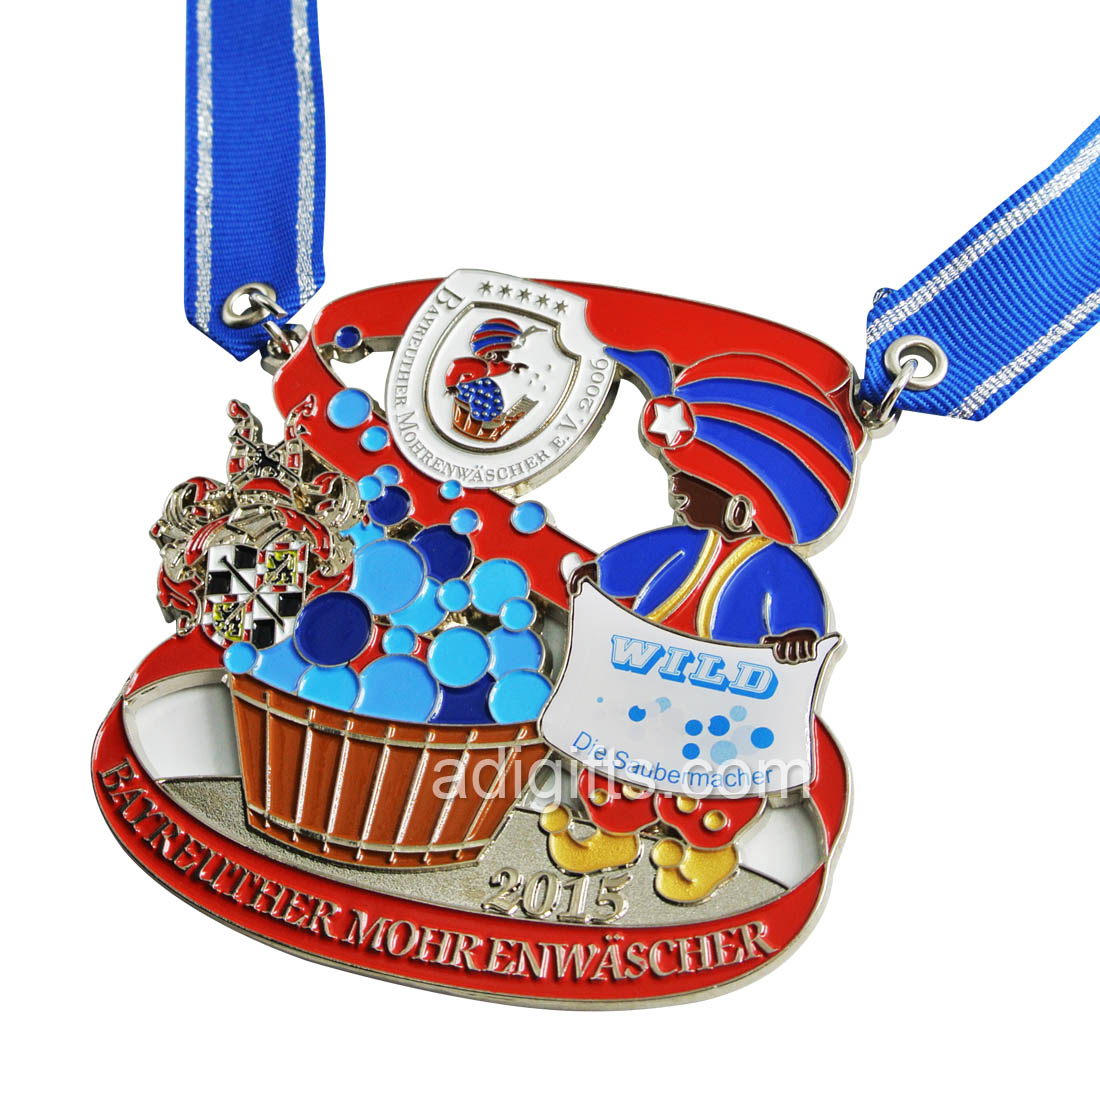 hot sales Carnival medal for Carival season 2018